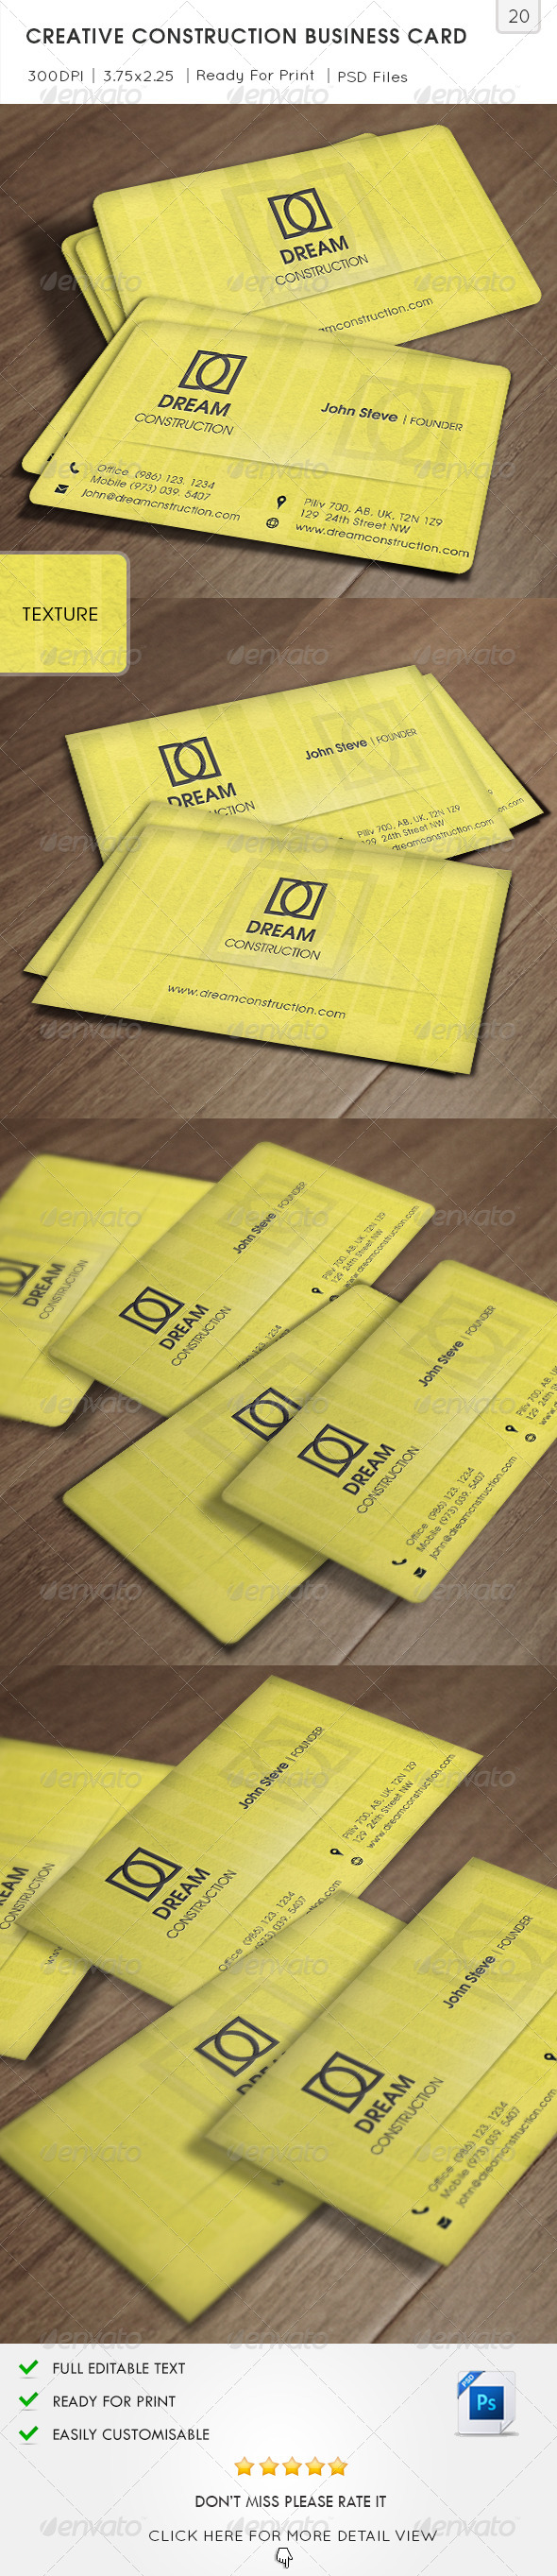 GraphicRiver Creative Construction Business Card v20 6049815